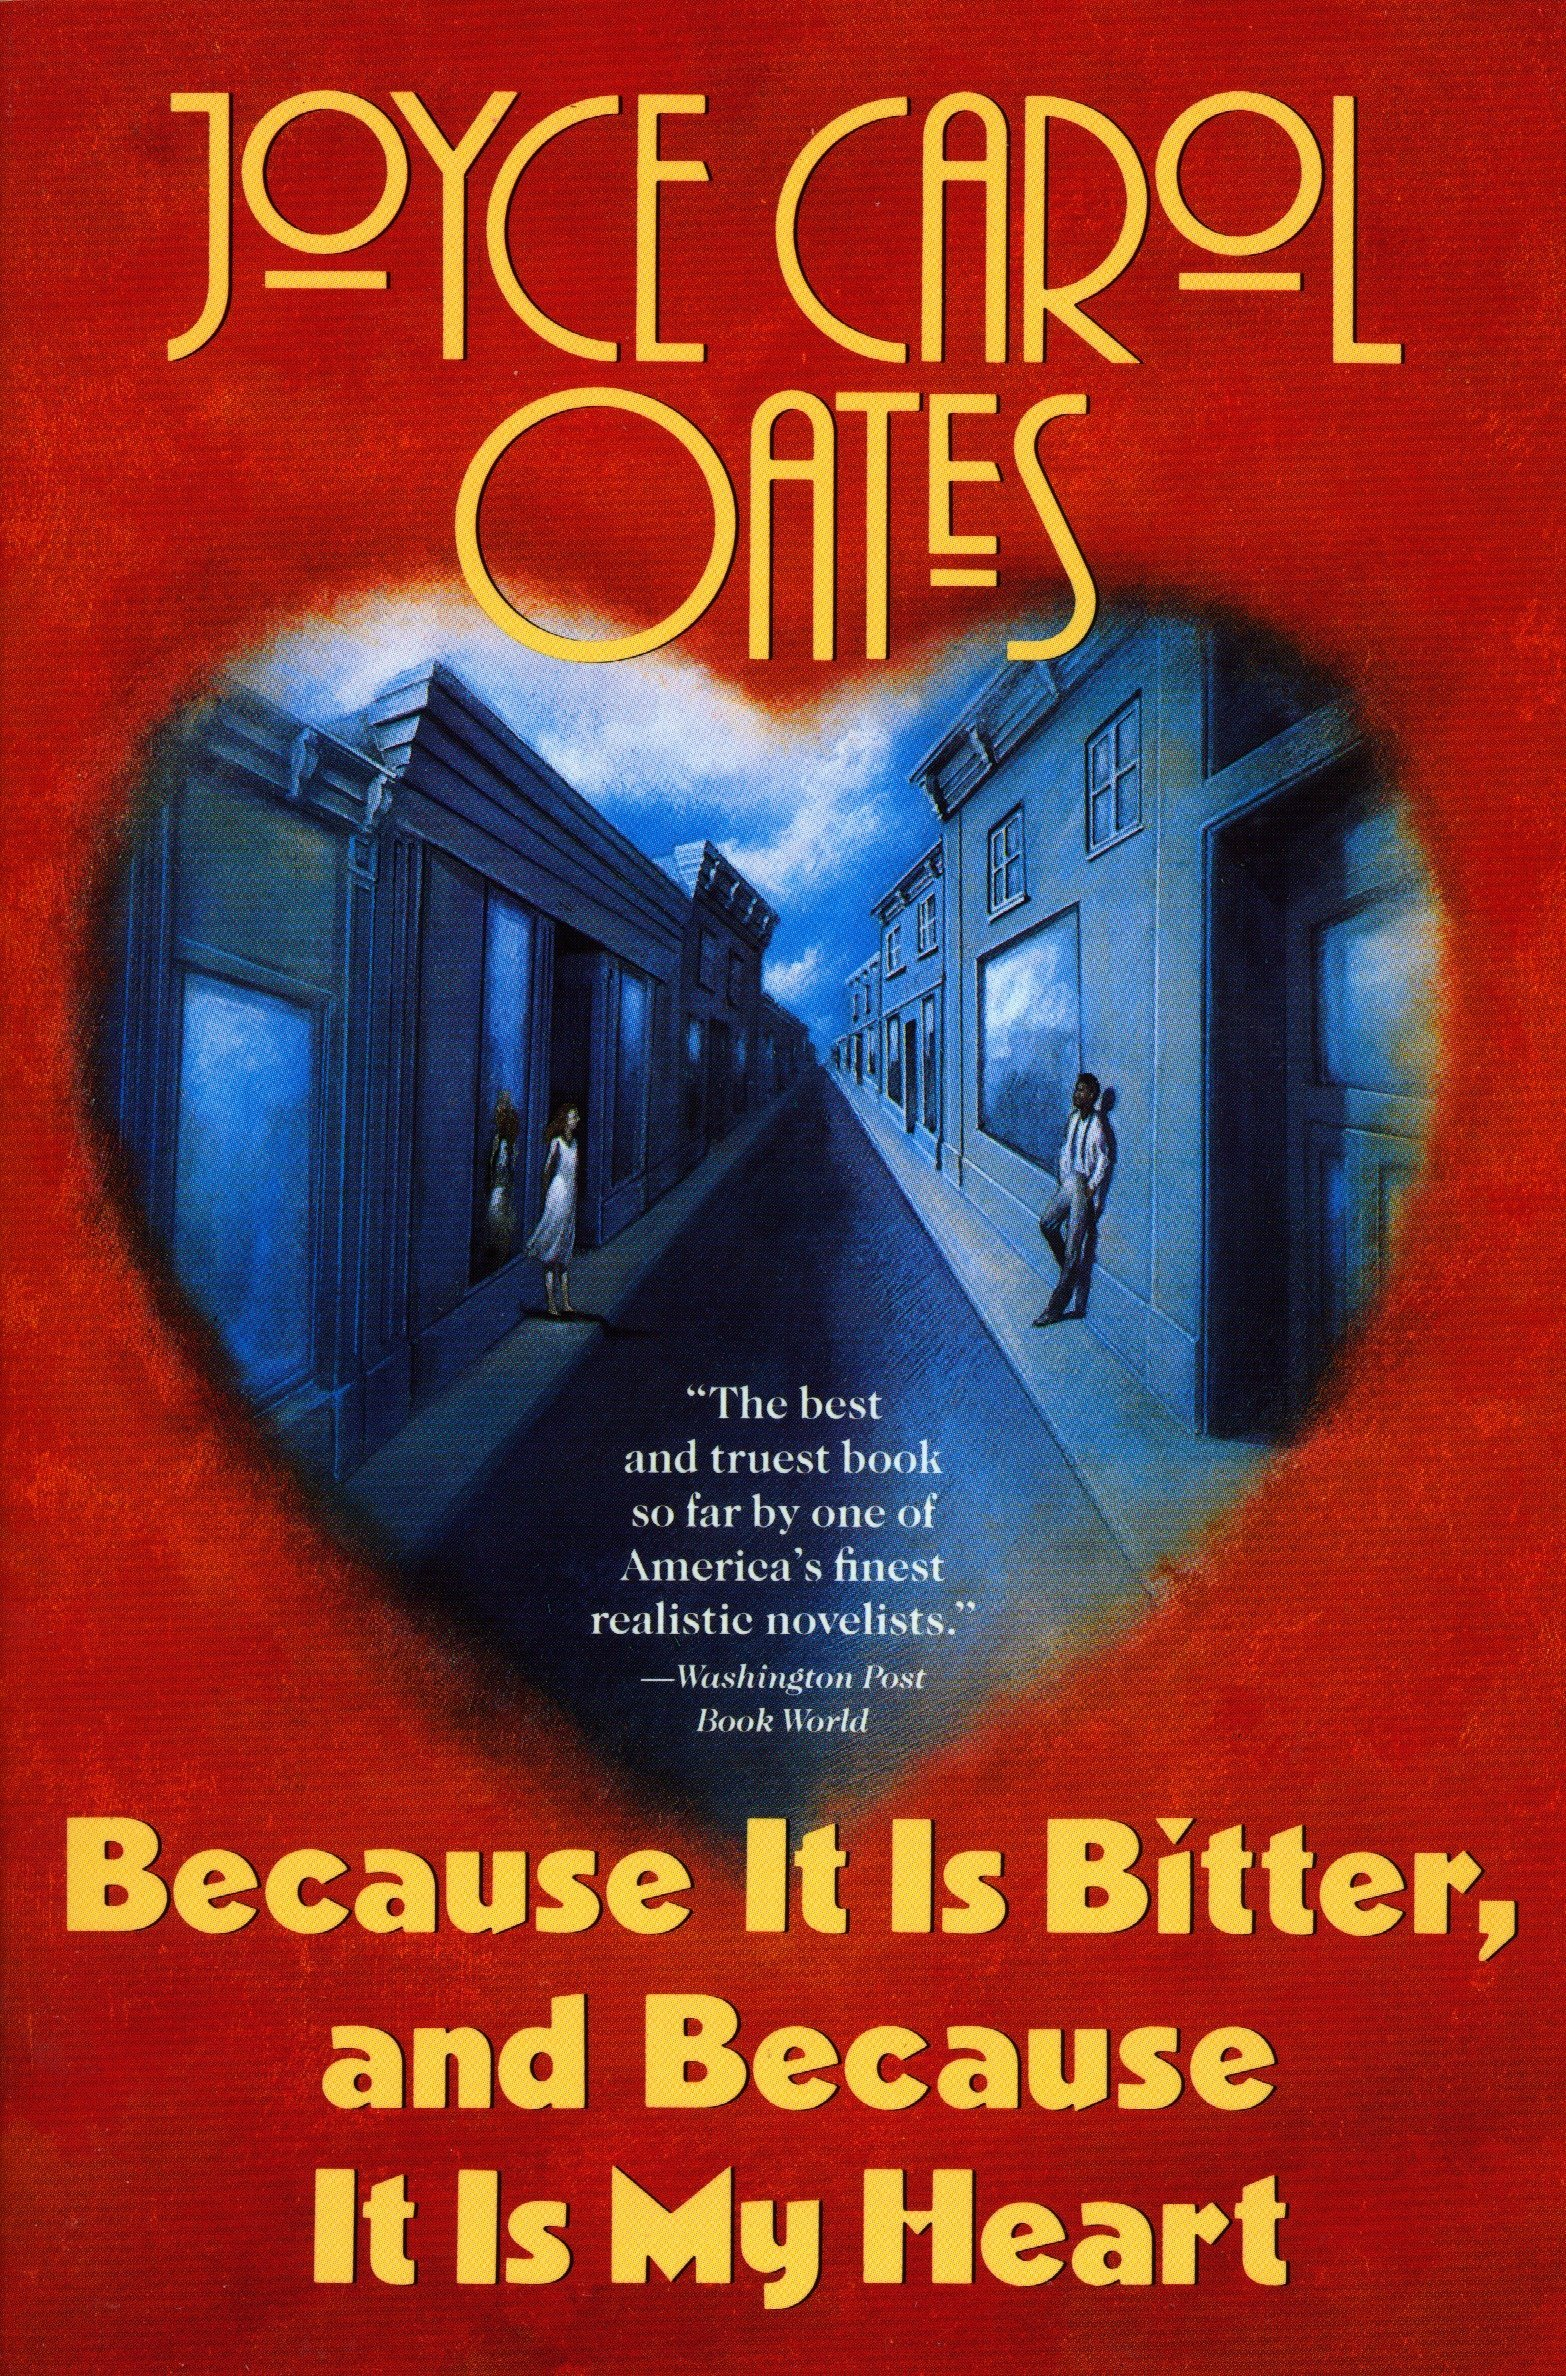 Download Because It Is Bitter And Because It Is My Heart By Joyce Carol Oates